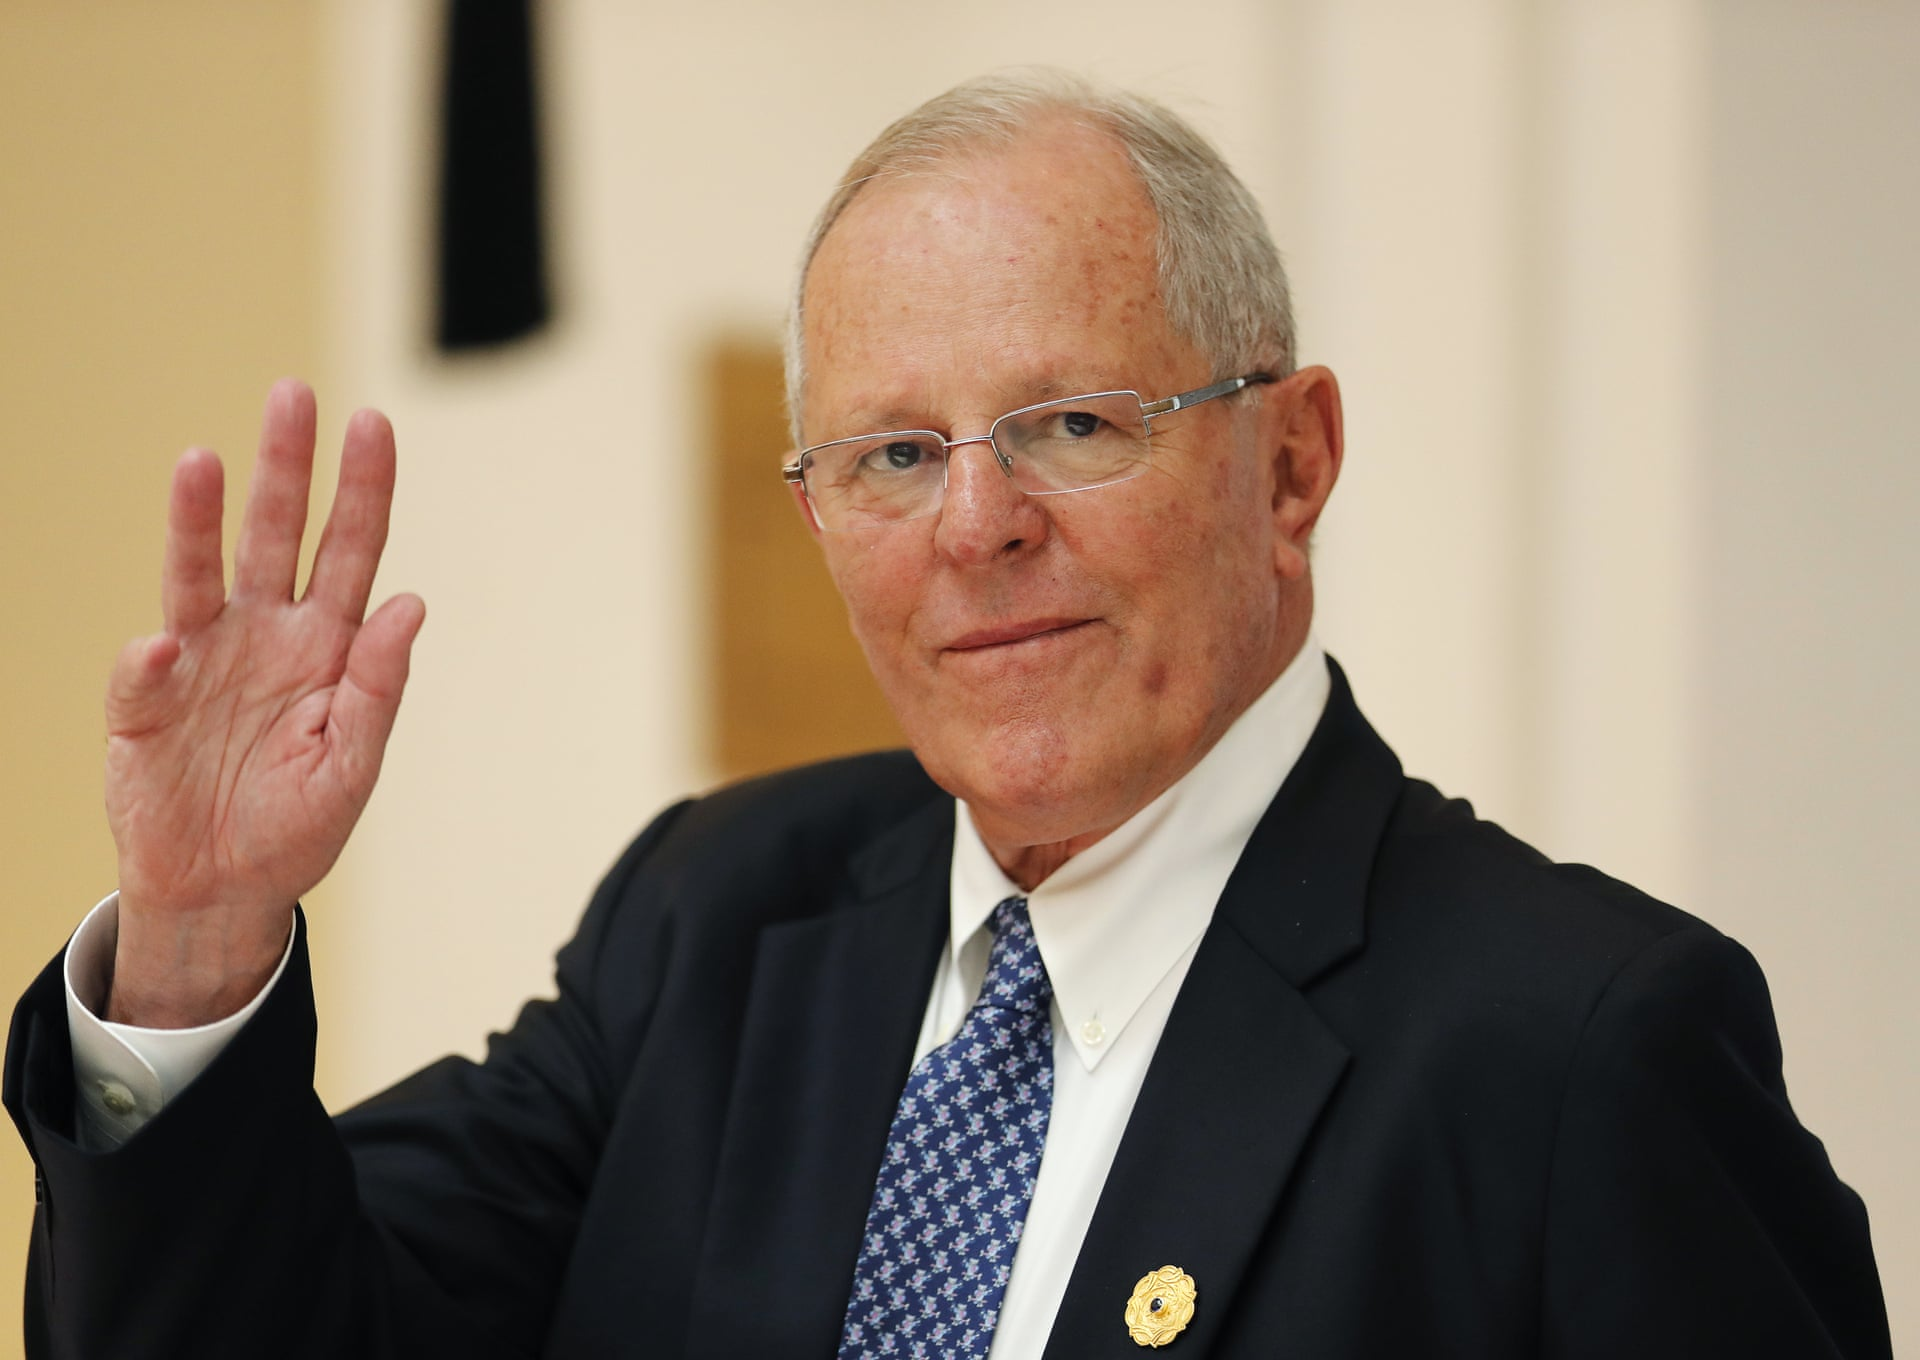 Peru's President Pedro Pablo Kuczynski survived a vote in Congress yesterday to impeach him, but remains under pressure to block a proposed law promoting highway construction in the remote Amazon. Photograph: Jorge Silva/AP